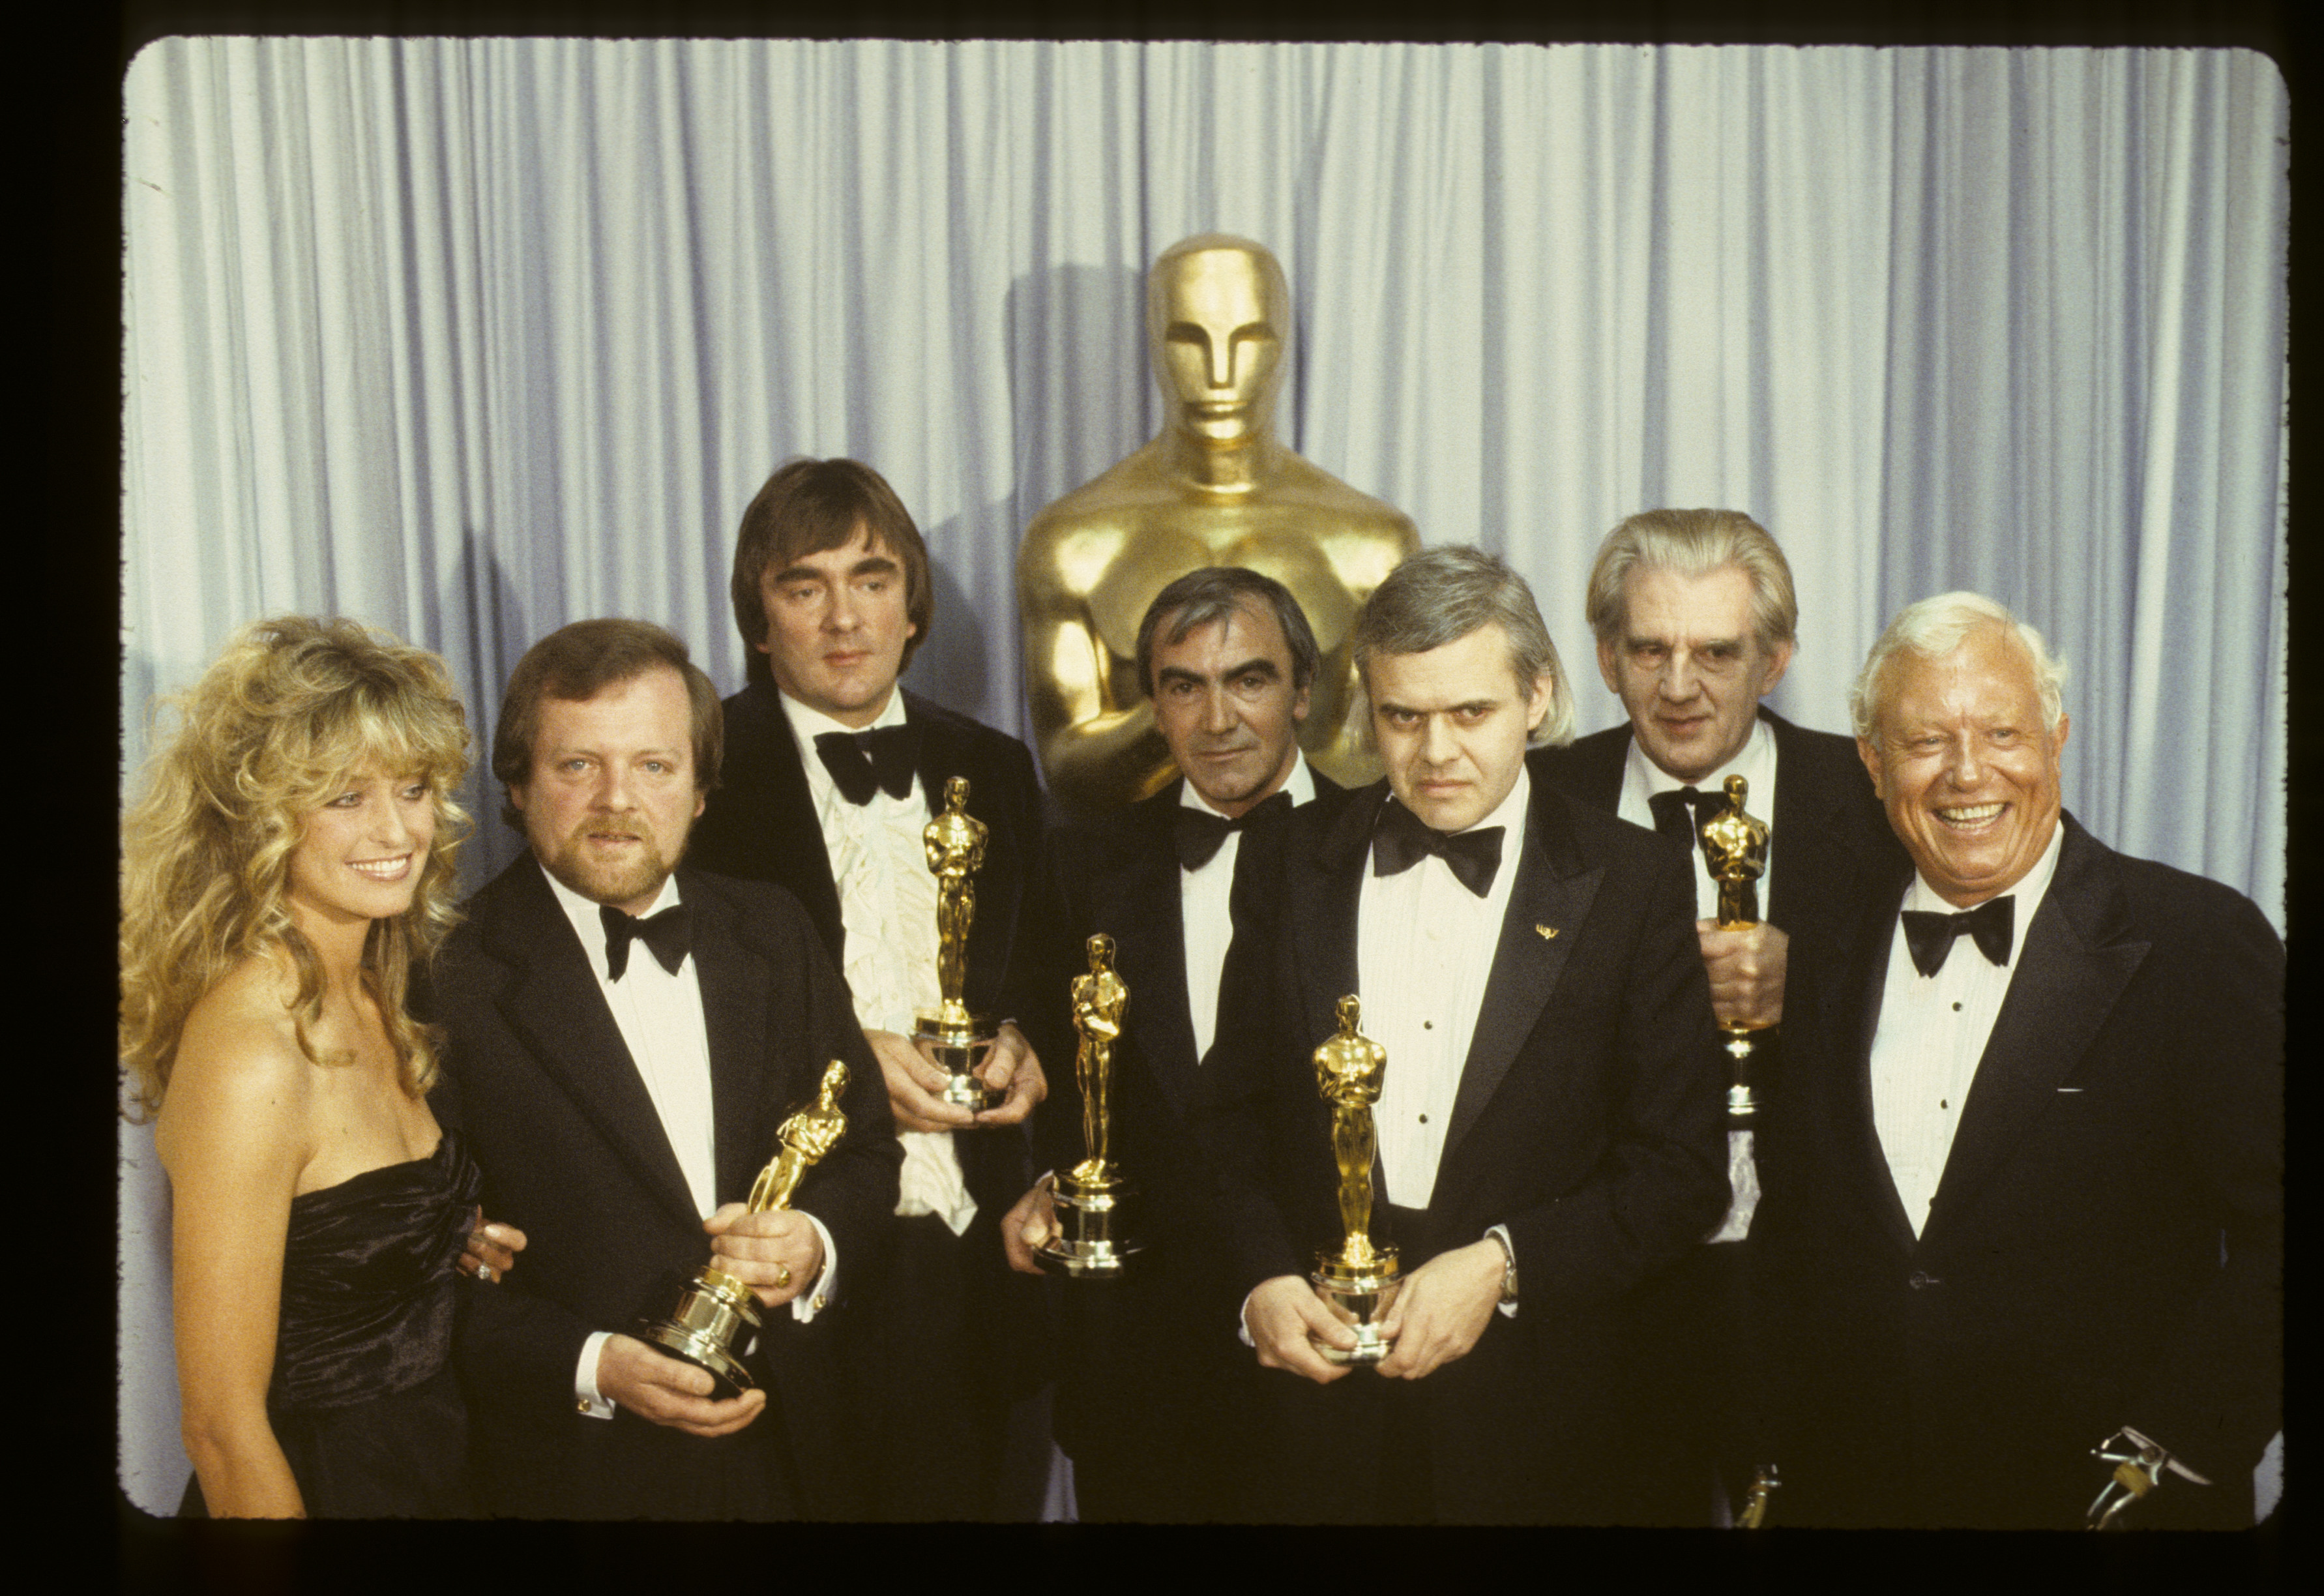 PRESENTERS FARRAH FAWCETT AND HAROLD RUSSELL (R) WITH BEST VISUAL EFFECTS OSCAR WINNERS (2ND FROM L-R): H.R. GIGER, CARLO RAMBALDI, BRIAN JOHNSON, NICK ALLDER, DENYS AYLING